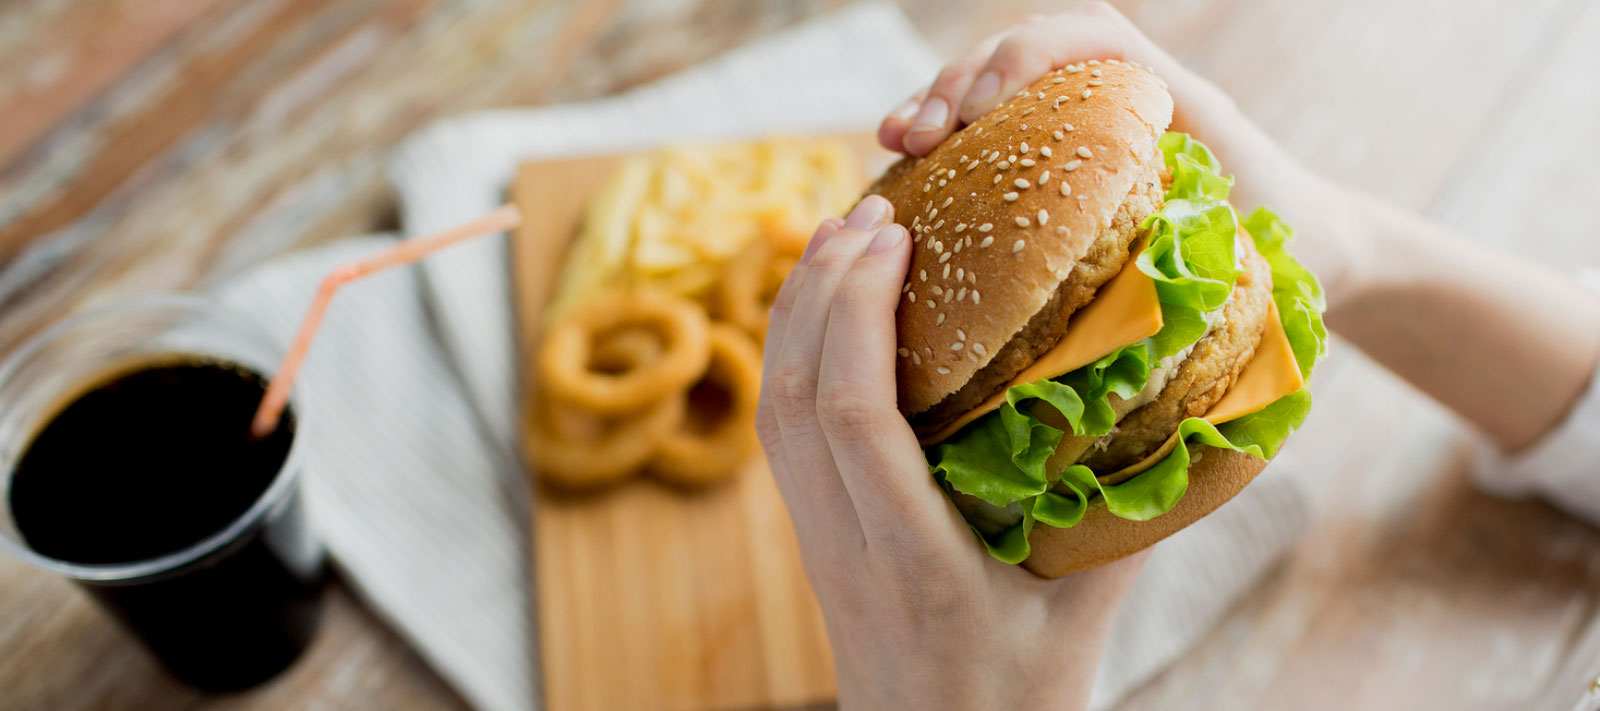 fast food popularity Why is junk food so popular it doesn't need much time to cook, it is cheap it is a common knowledge that in our today life these are advantages, this is why most people prefer junk food the world develops horribly fast, so people are developing too.